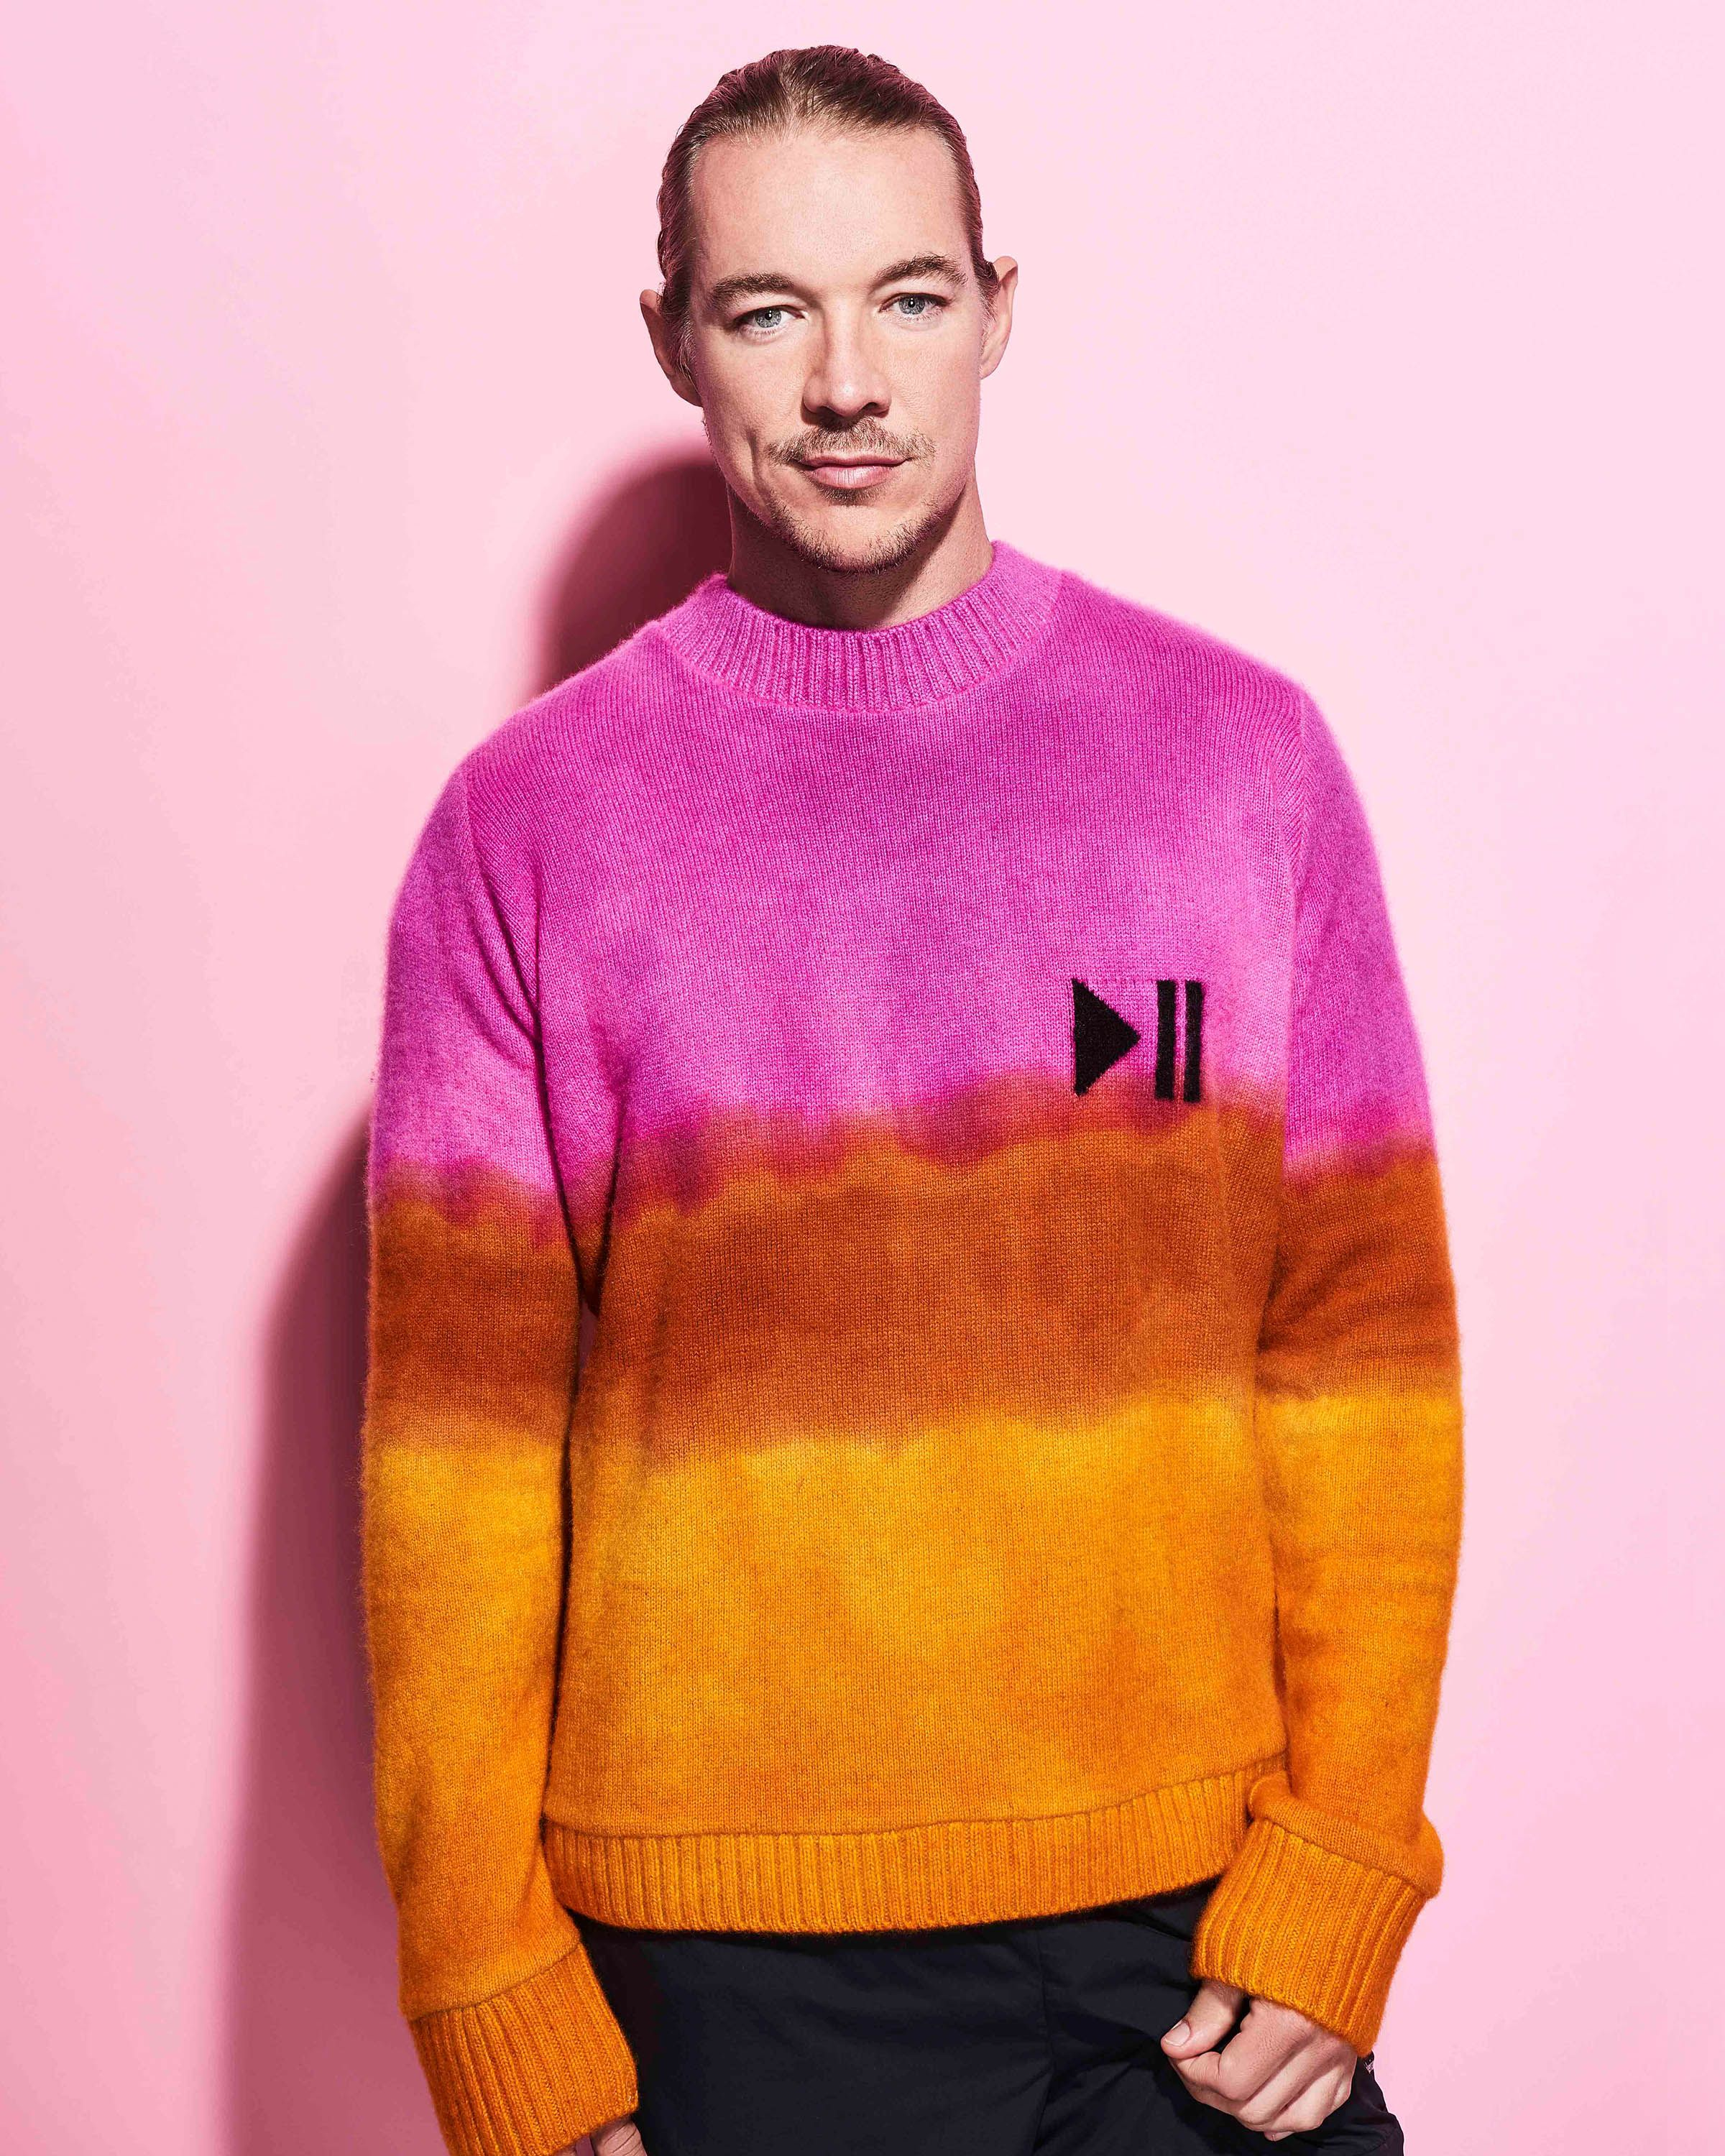 Diplo Knows He Used to Be the Villain. Now He Just Wants to Be Supportive.